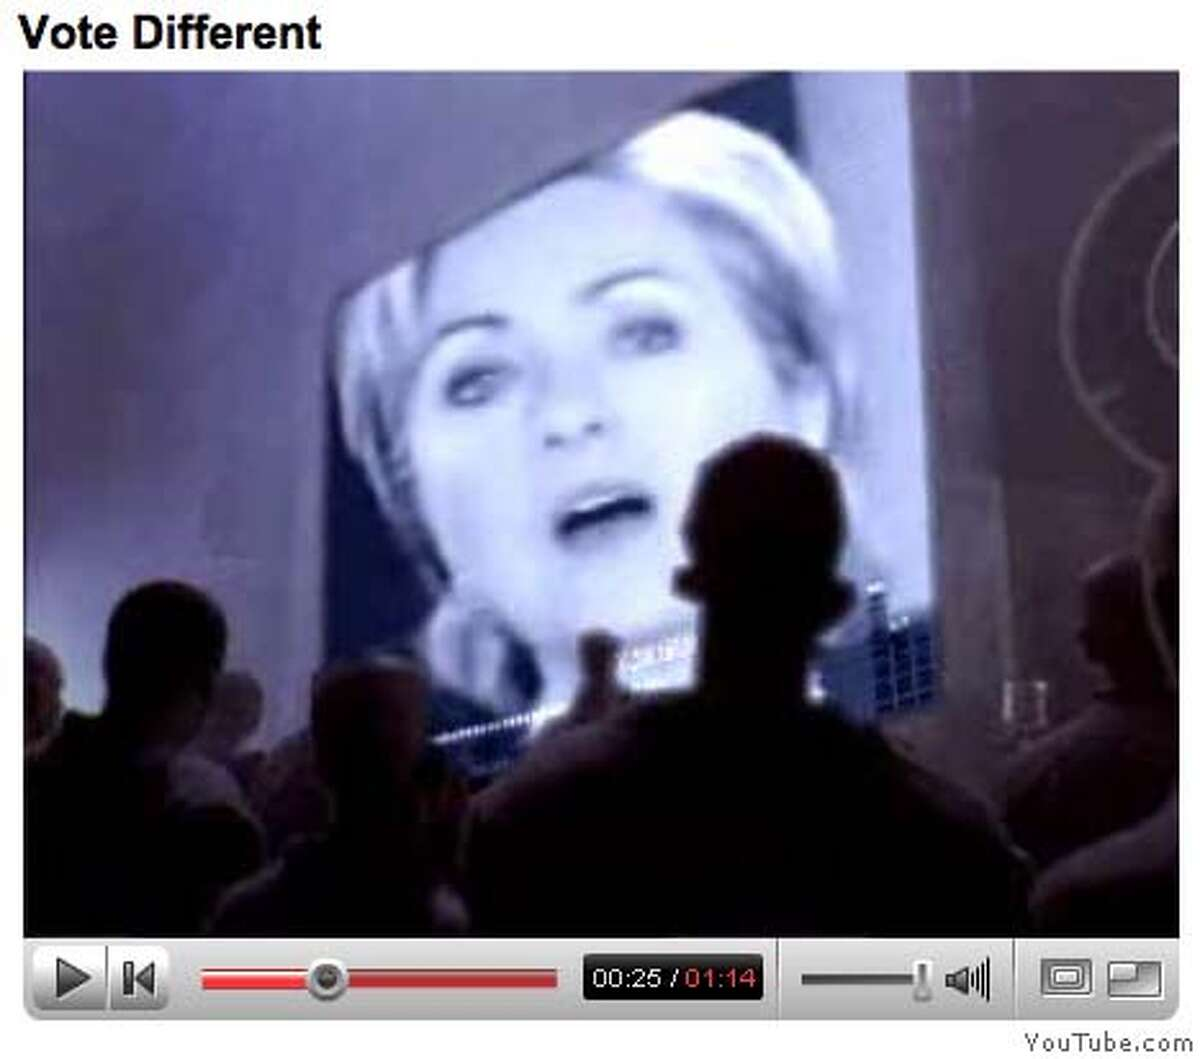 Frame grab from YouTube.com showing the